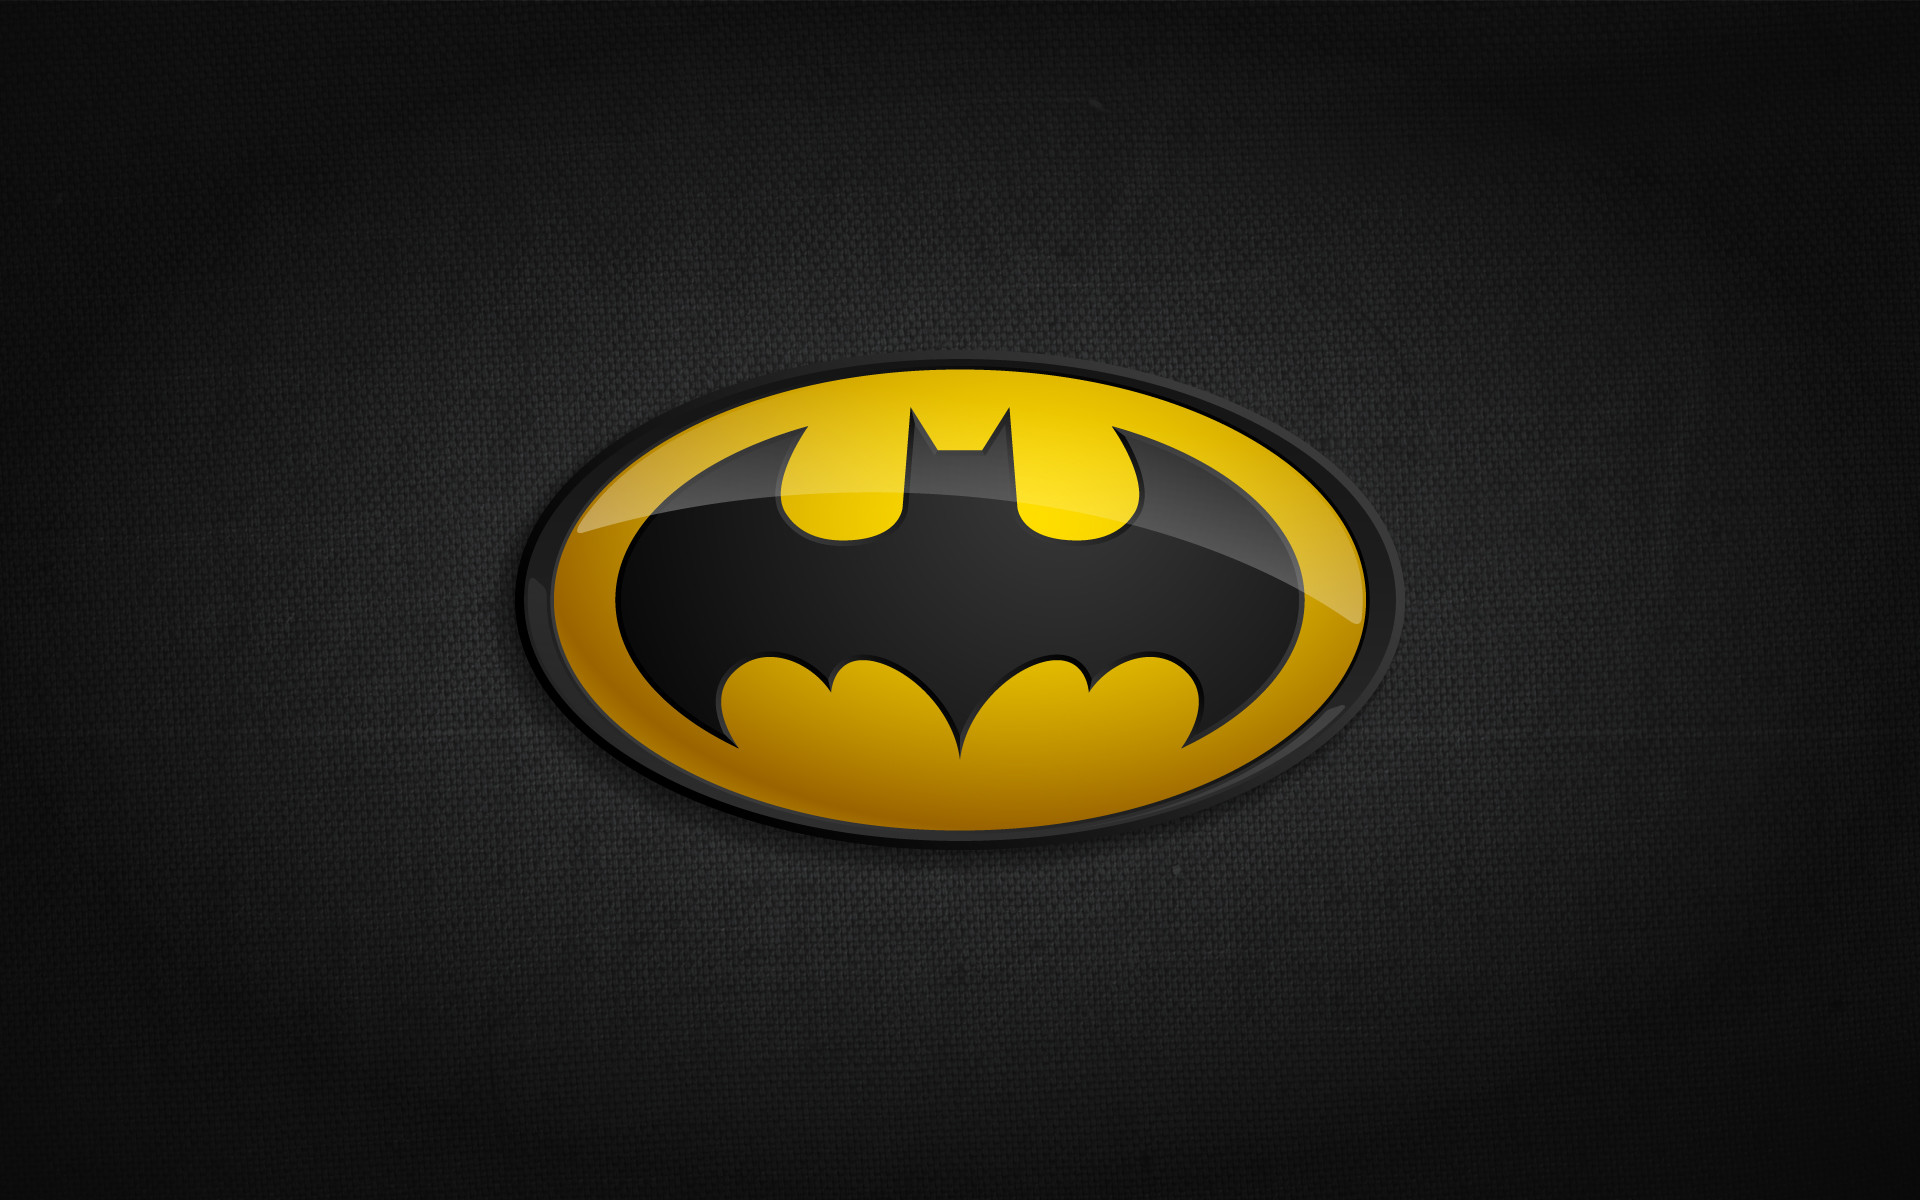 1920x1200 wallpaper | Batman logo wallpaper | The Free Wallpapers | HD Wallpapers For  Free ... | ENJOY BUFFETS&BRUNCHS | Pinterest | Batman and Anime